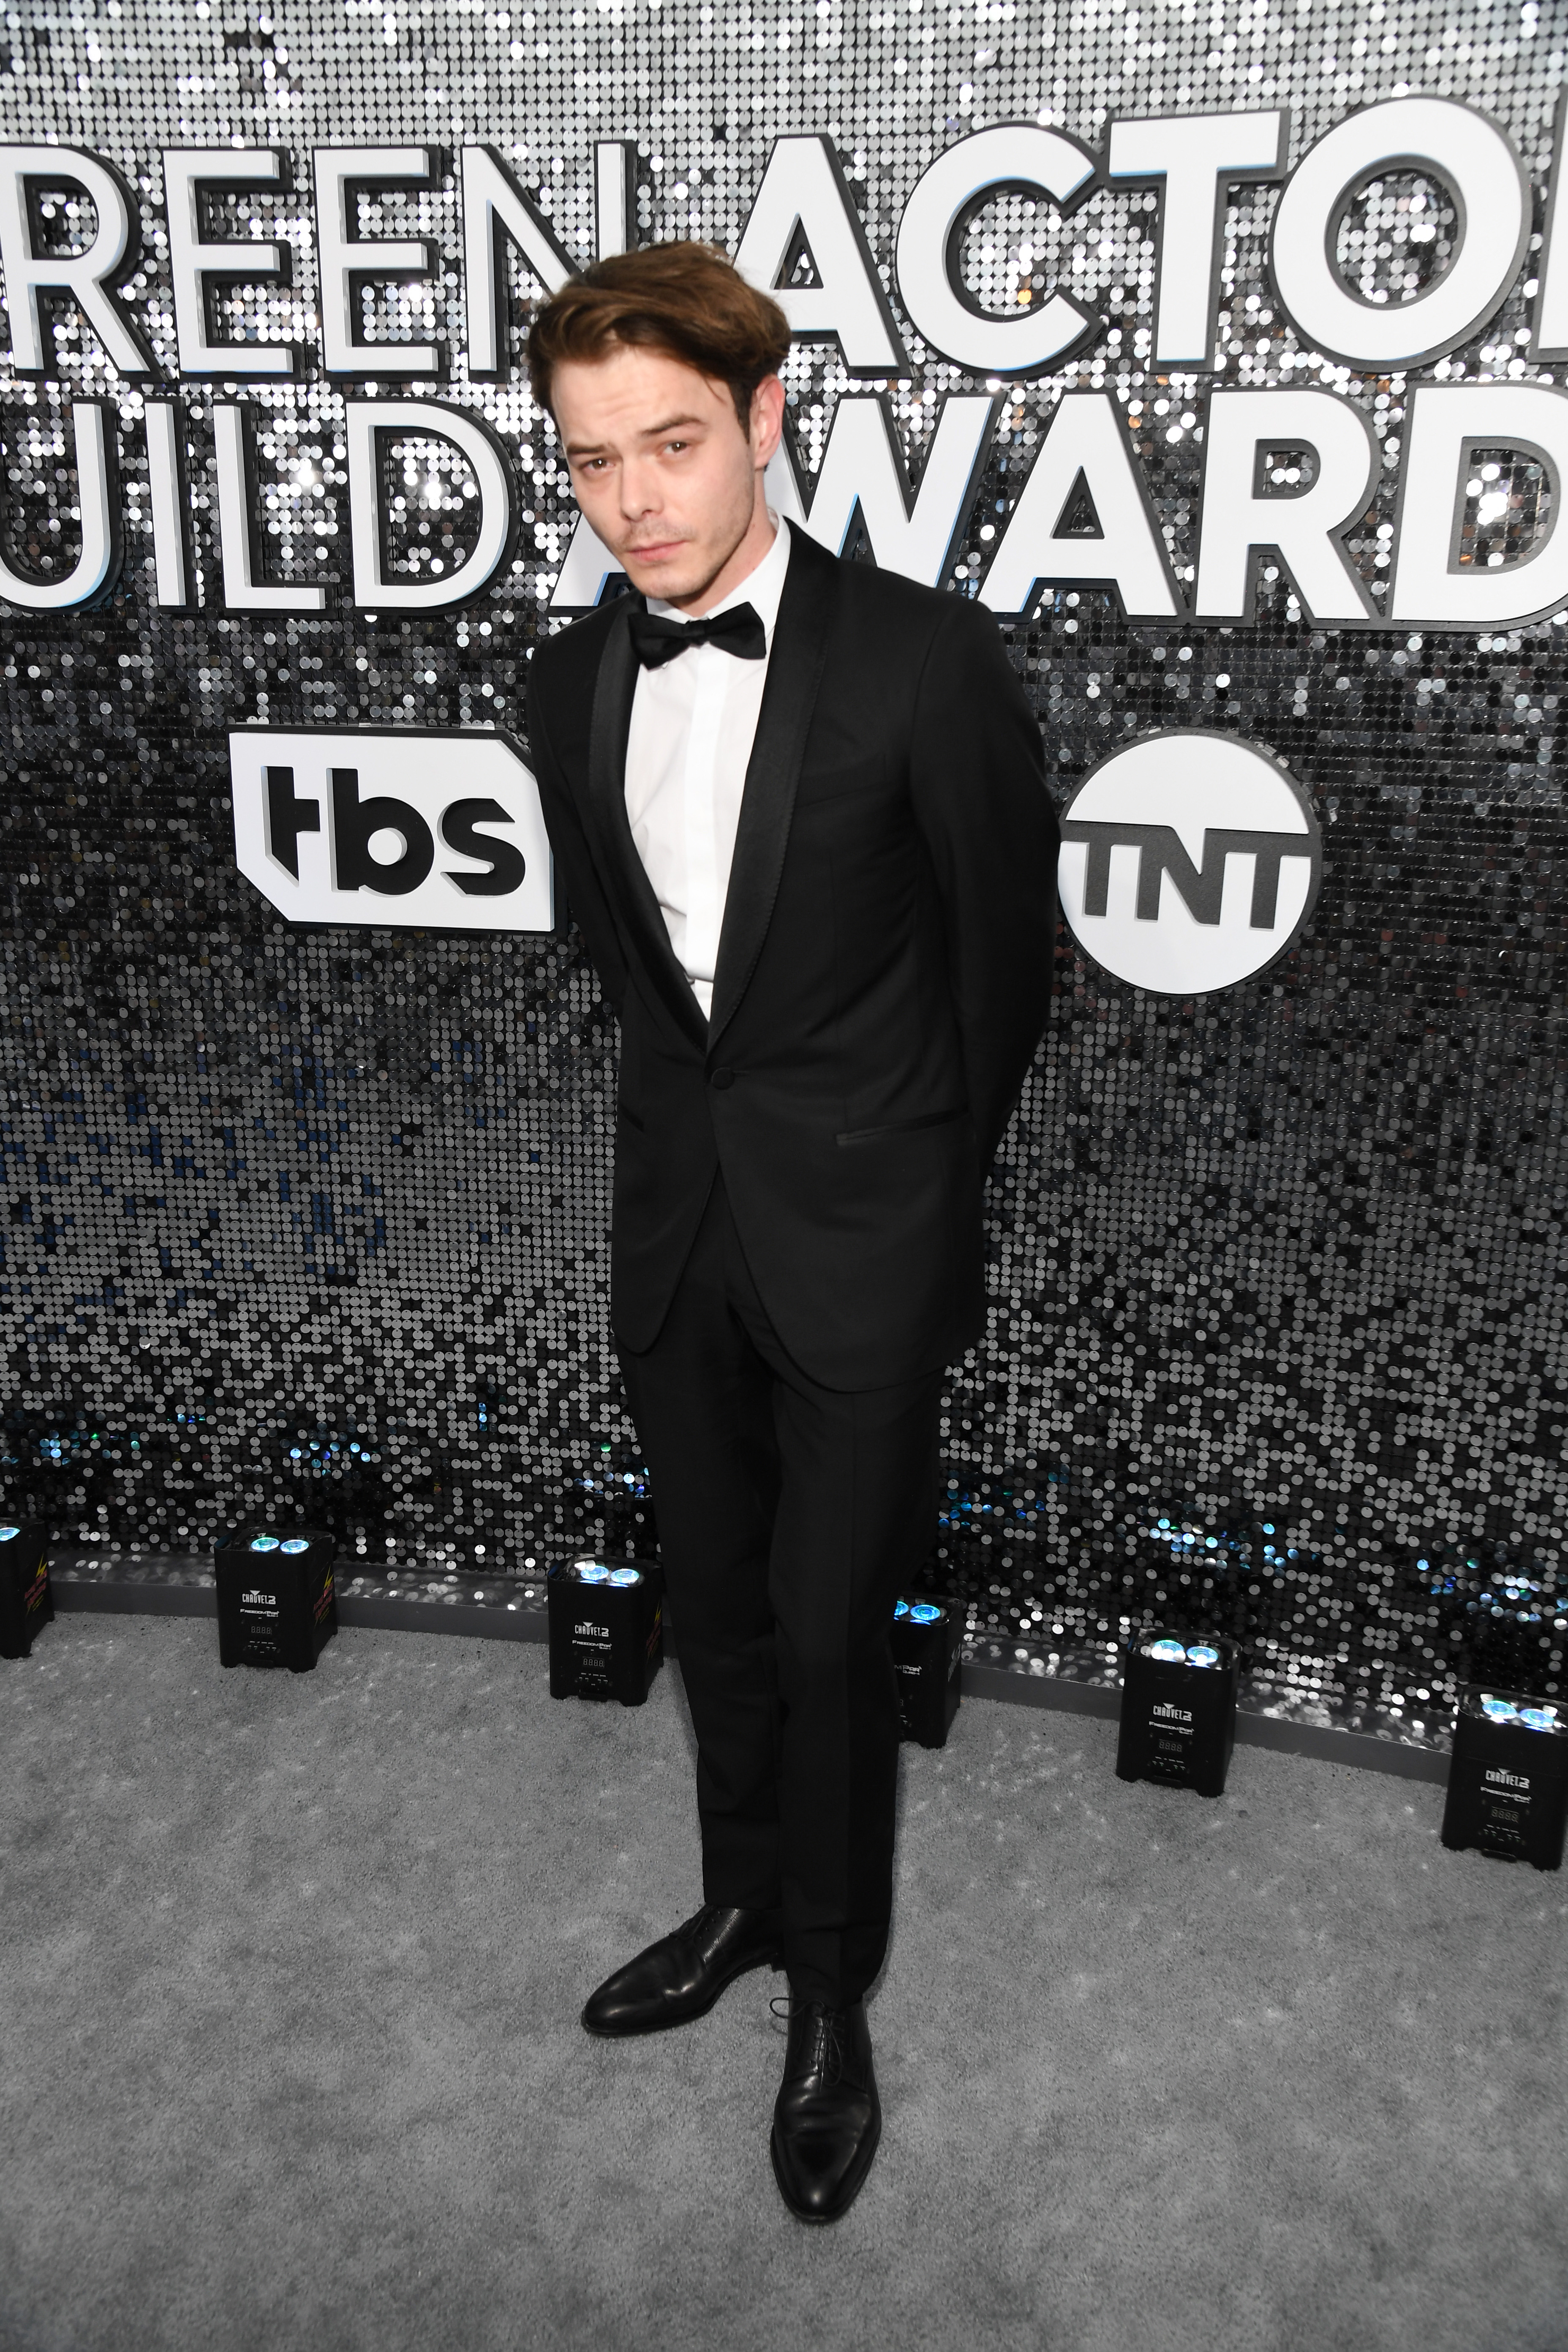 LOS ANGELES, CALIFORNIA - JANUARY 19: Charlie Heaton attends the 26th Annual Screen ActorsGuild Awards at The Shrine Auditorium on January 19, 2020 in Los Angeles, California. 721336 (Photo by Kevin Mazur/Getty Images for Turner)